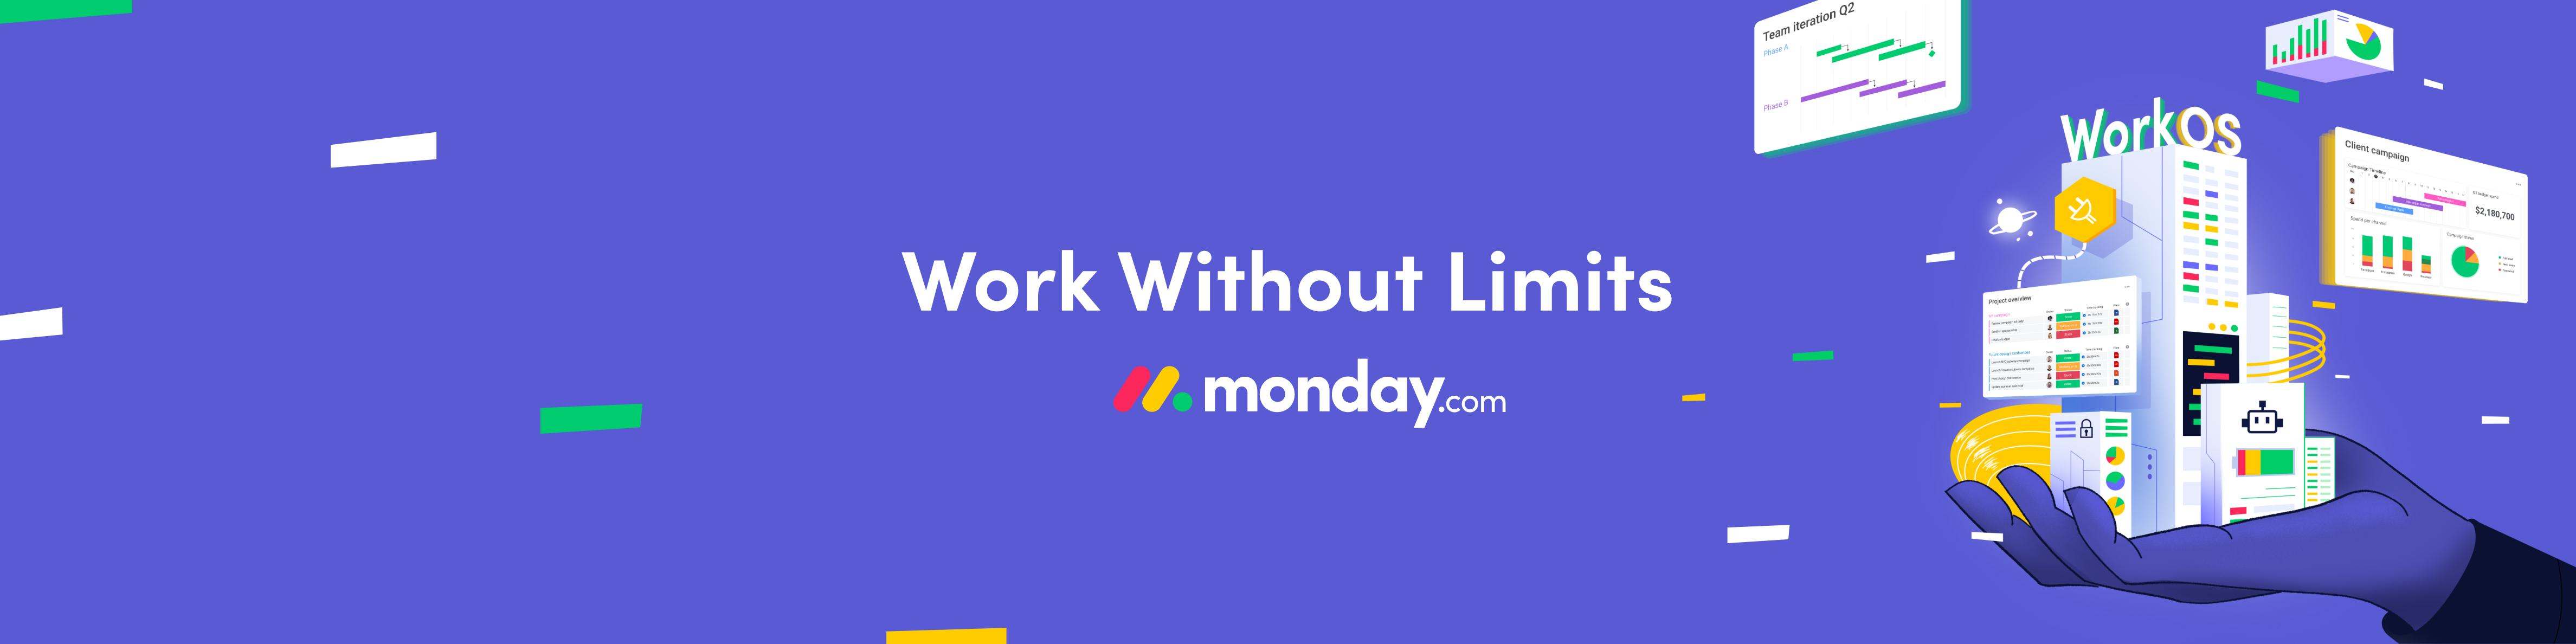 Review Monday.com HR: Manage all your HR processes in one place - Appvizer